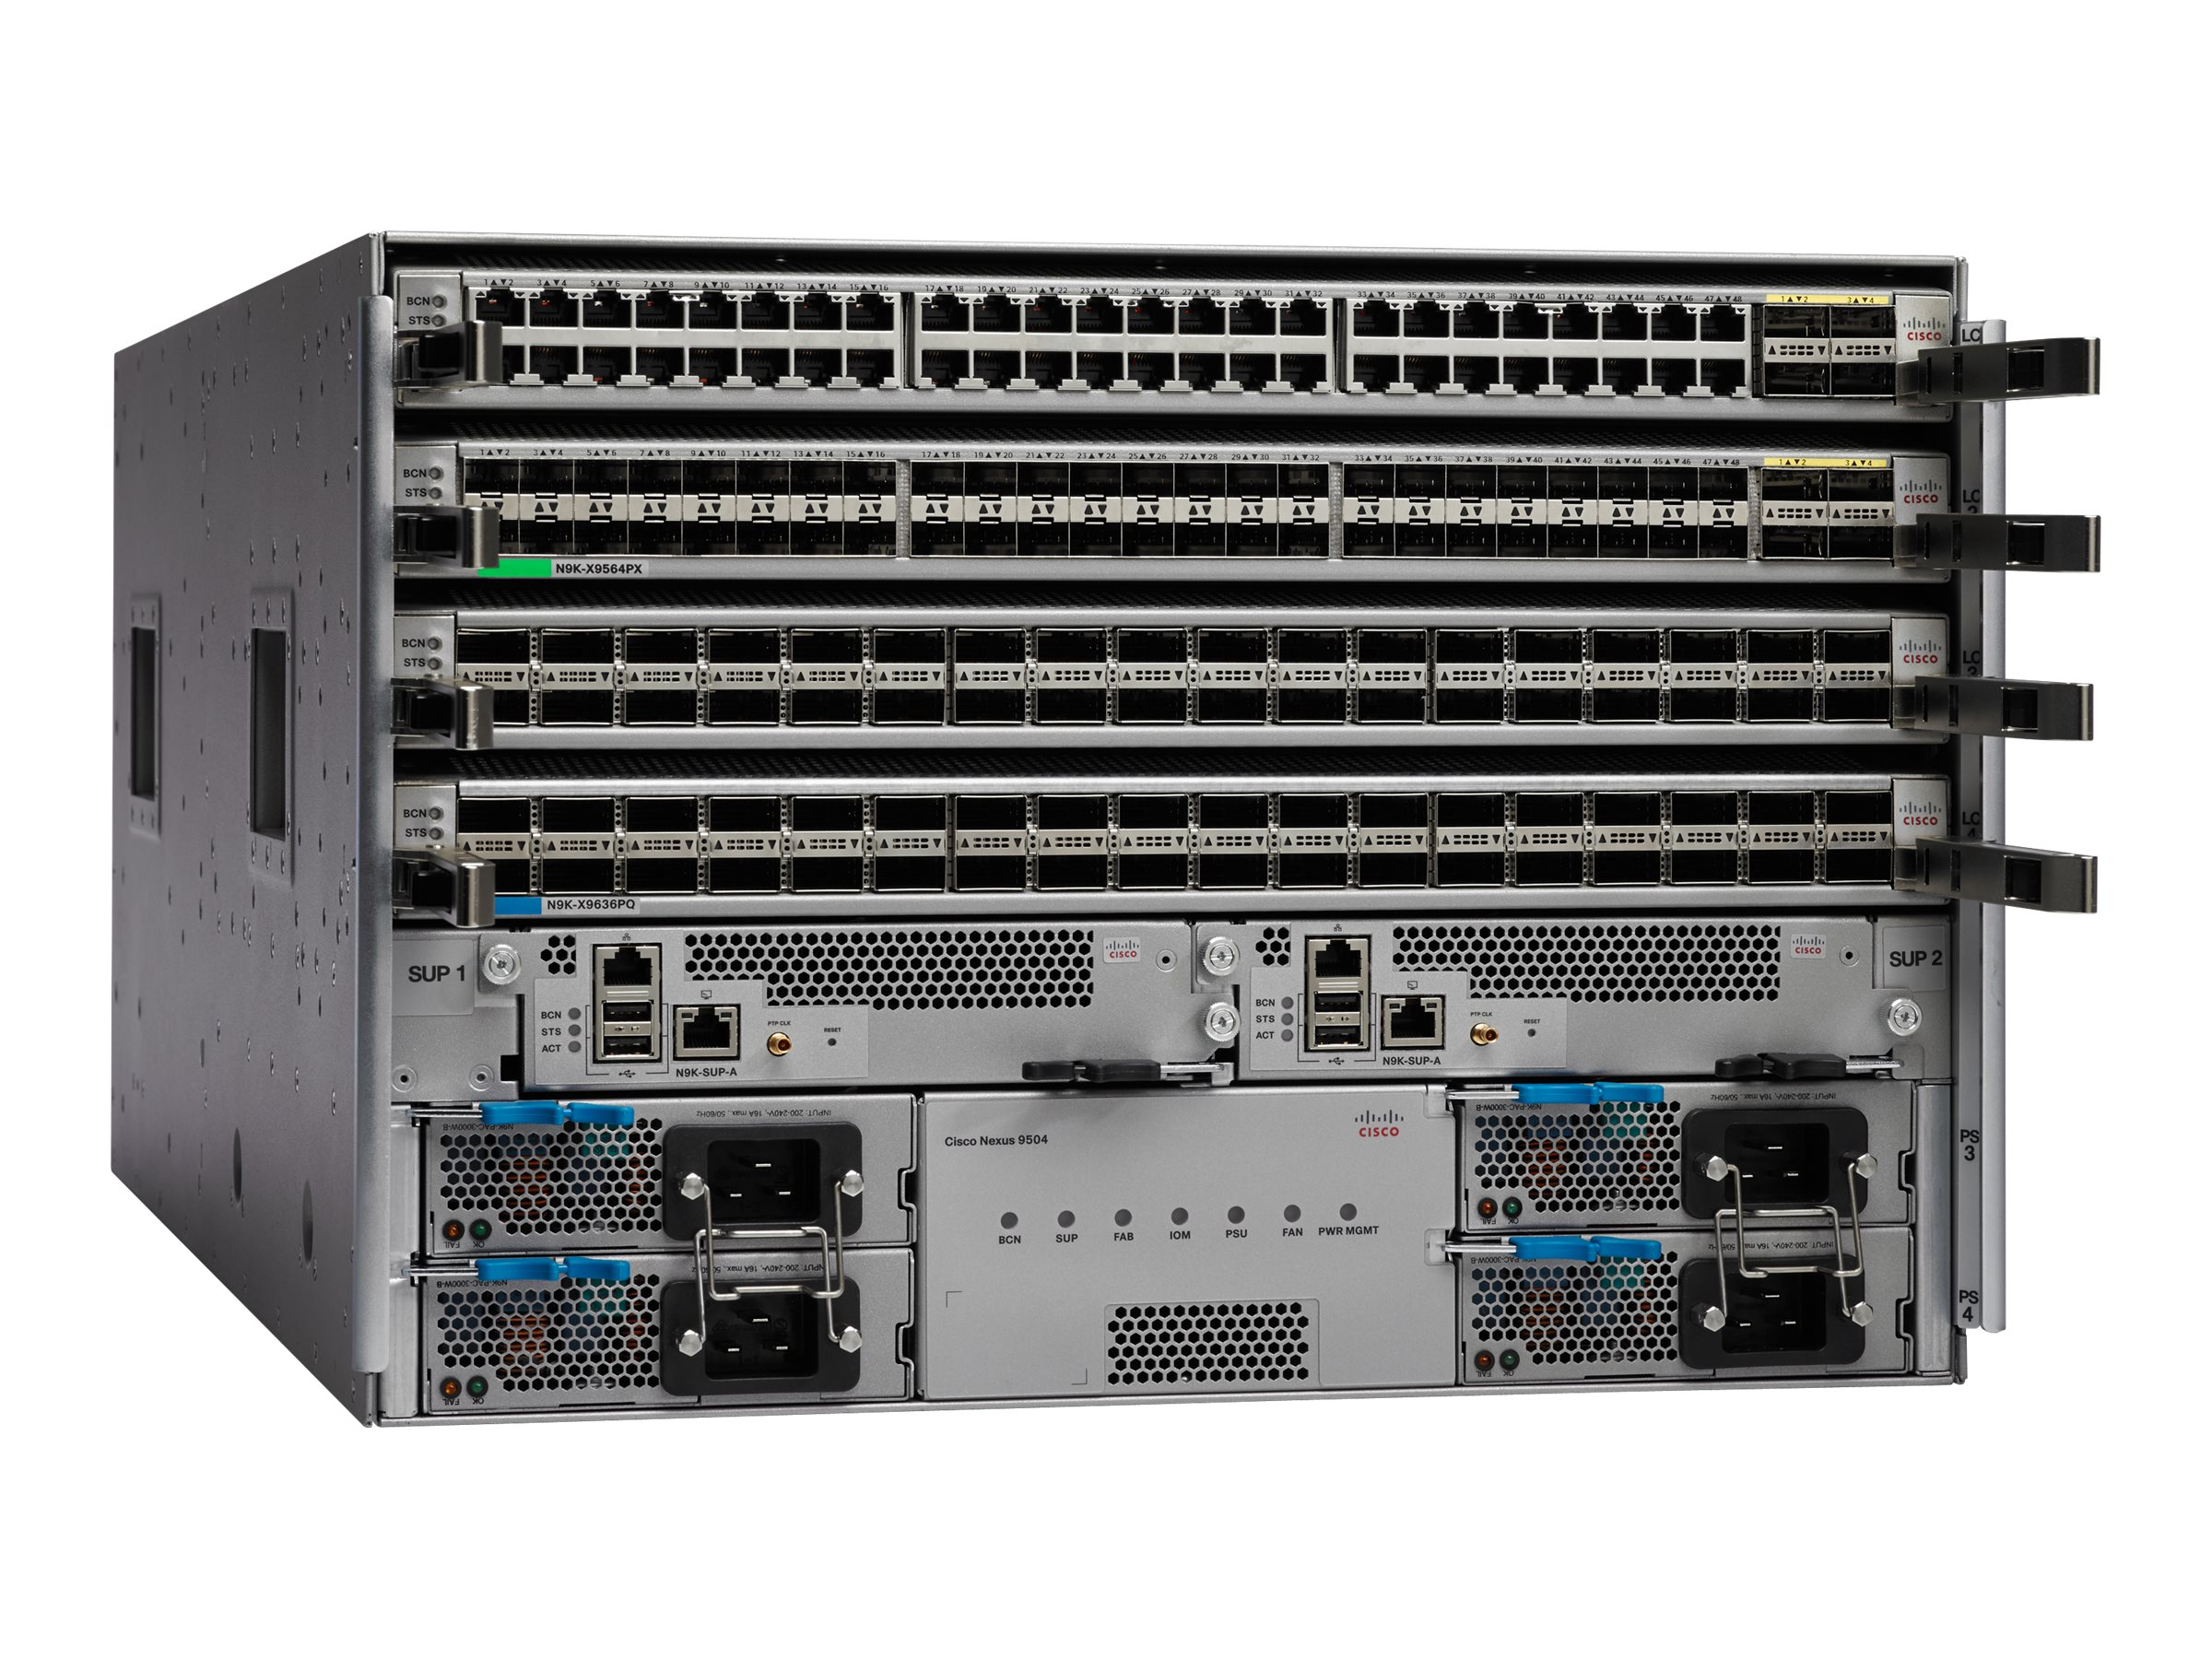 Cisco C1-N9K-C9504-B3 Image 1